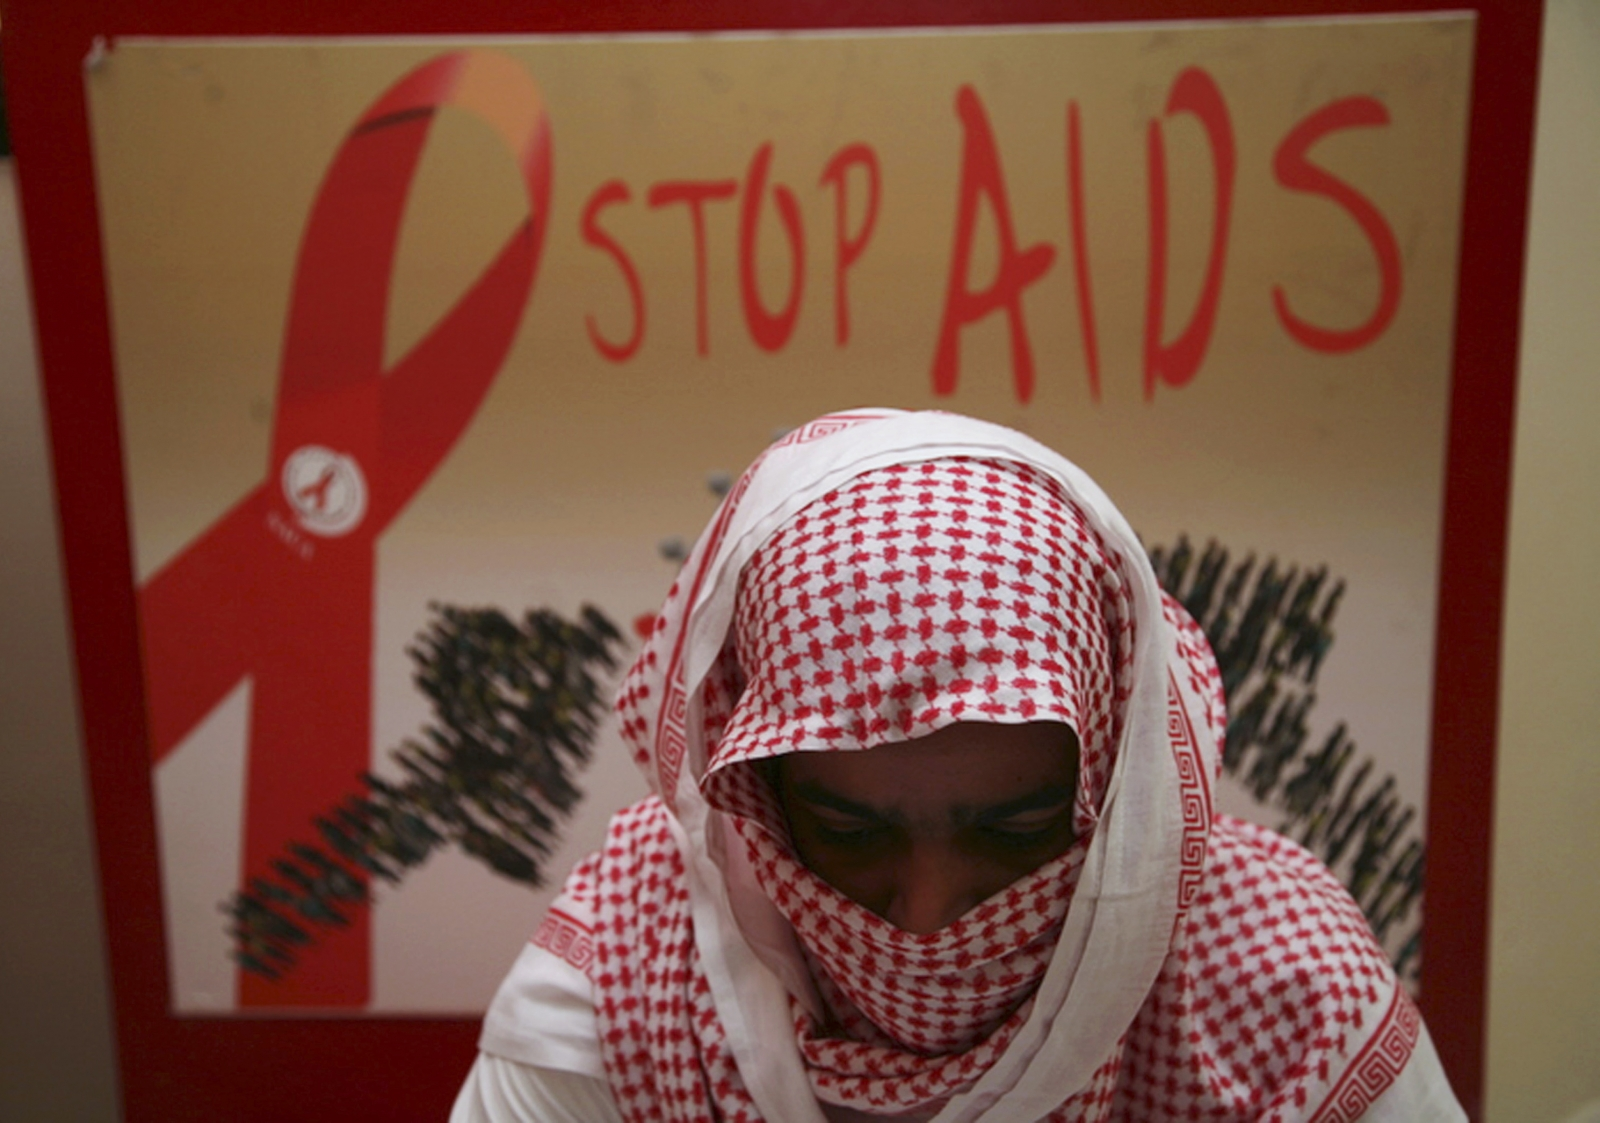 It's 2014 - how close are we to finding a cure for HIV/AIDS?